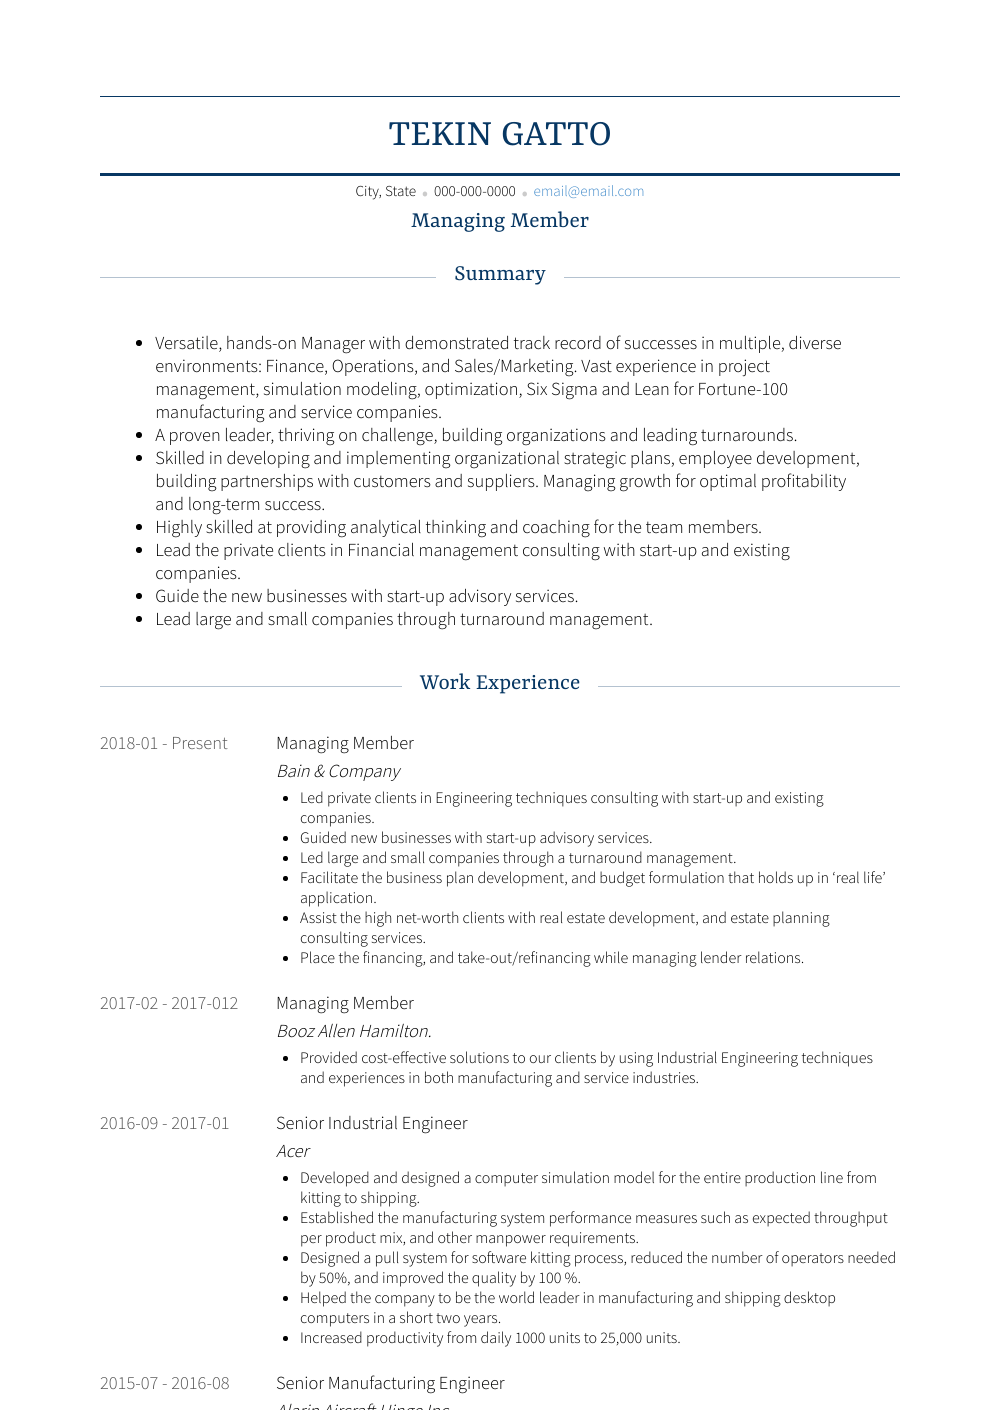 Managing Member Resume Sample